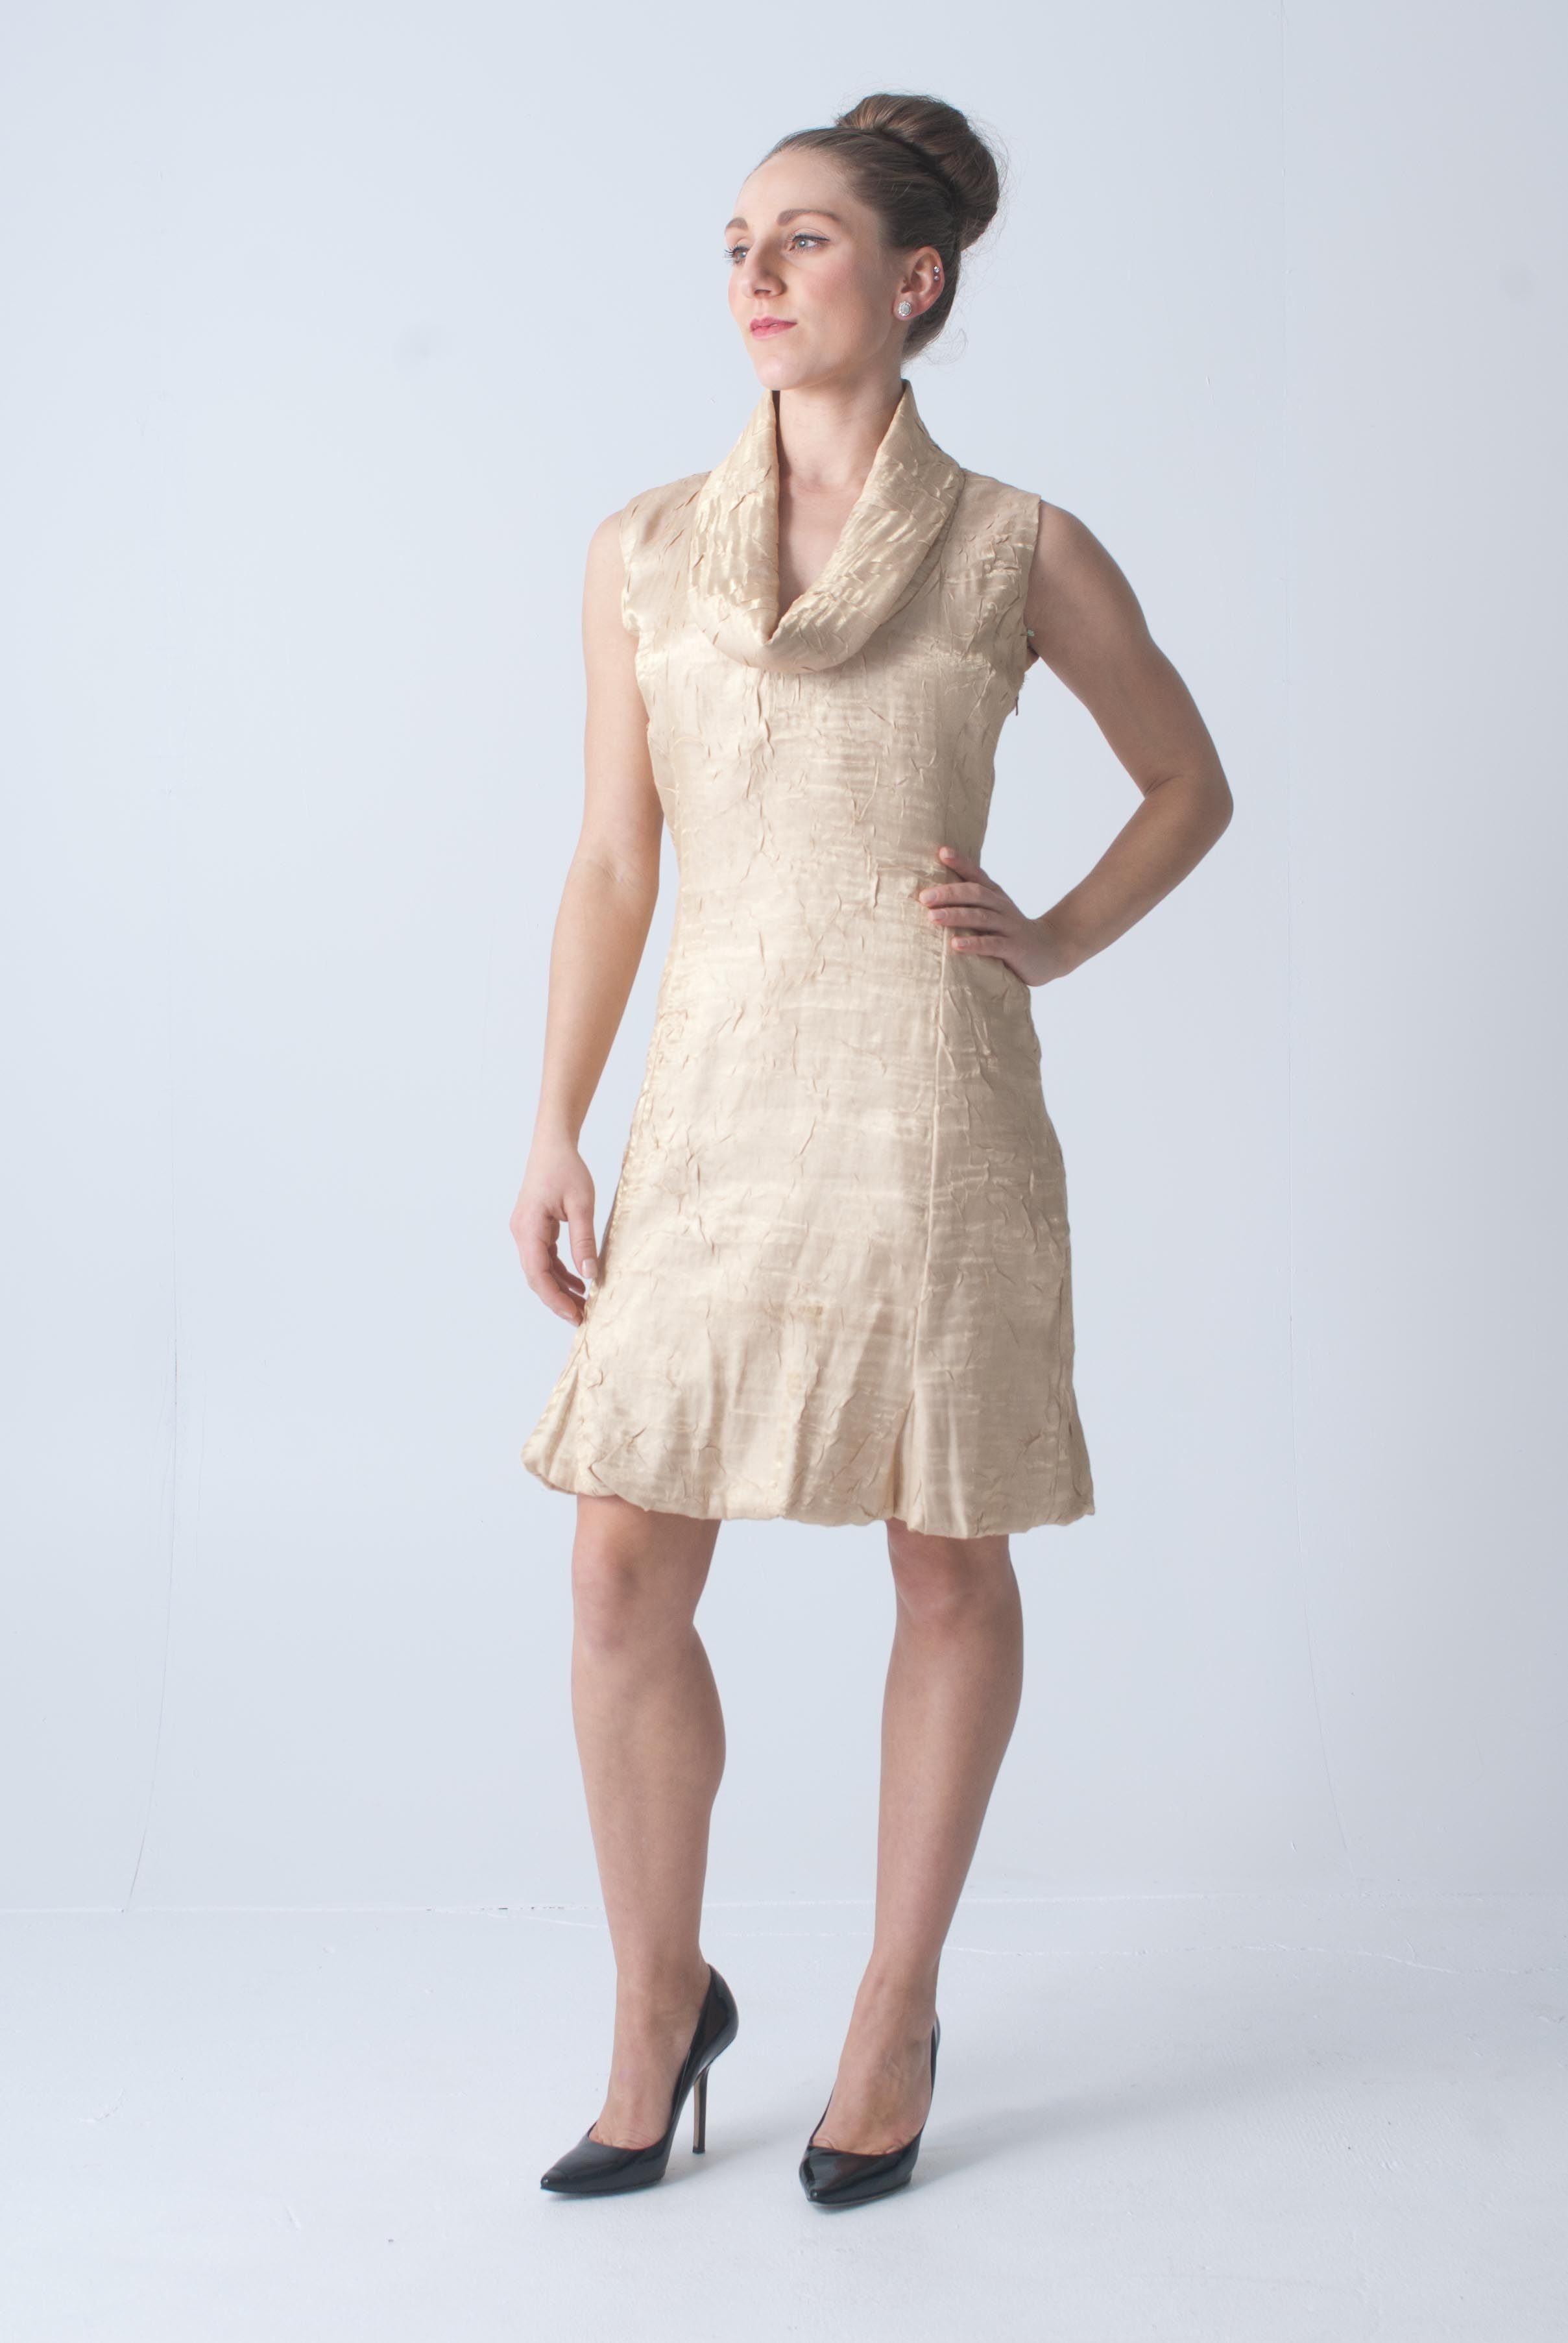 Spring 2010 Collection  Lauren lein ltd out of Chicago, IL pictures by Will Edwards Photography